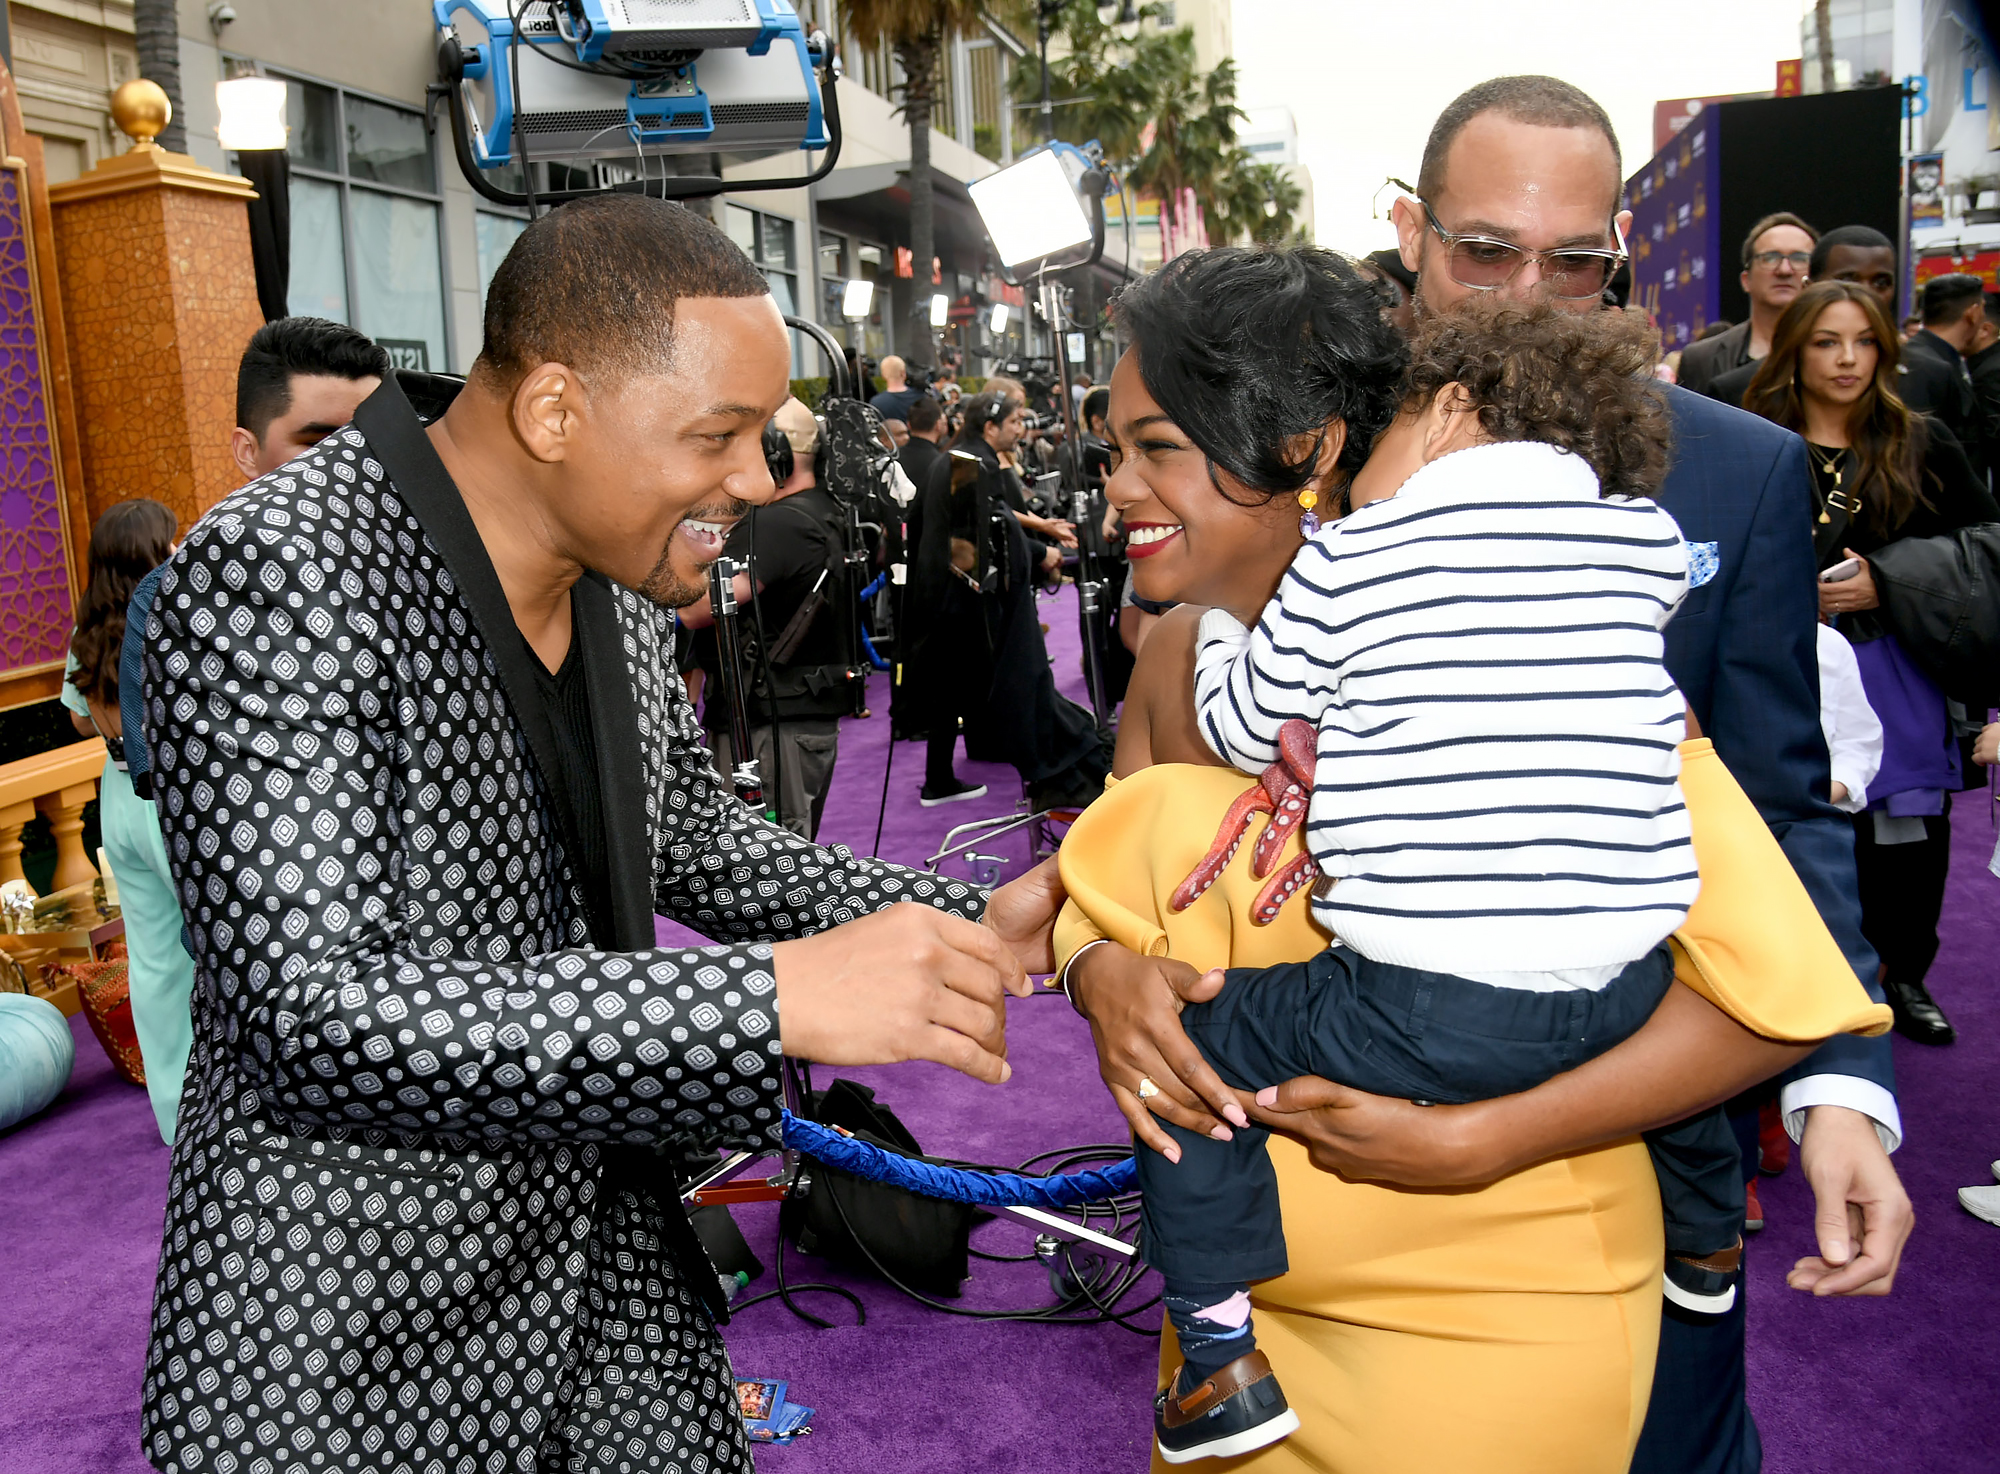 Will-Smith,-Tatyana-Ali-Aladdin-premiere - Tatyana Ali, who played Ashley Banks on Fresh Prince , also showed her support for Will. With reporting by Kayley Stumpe